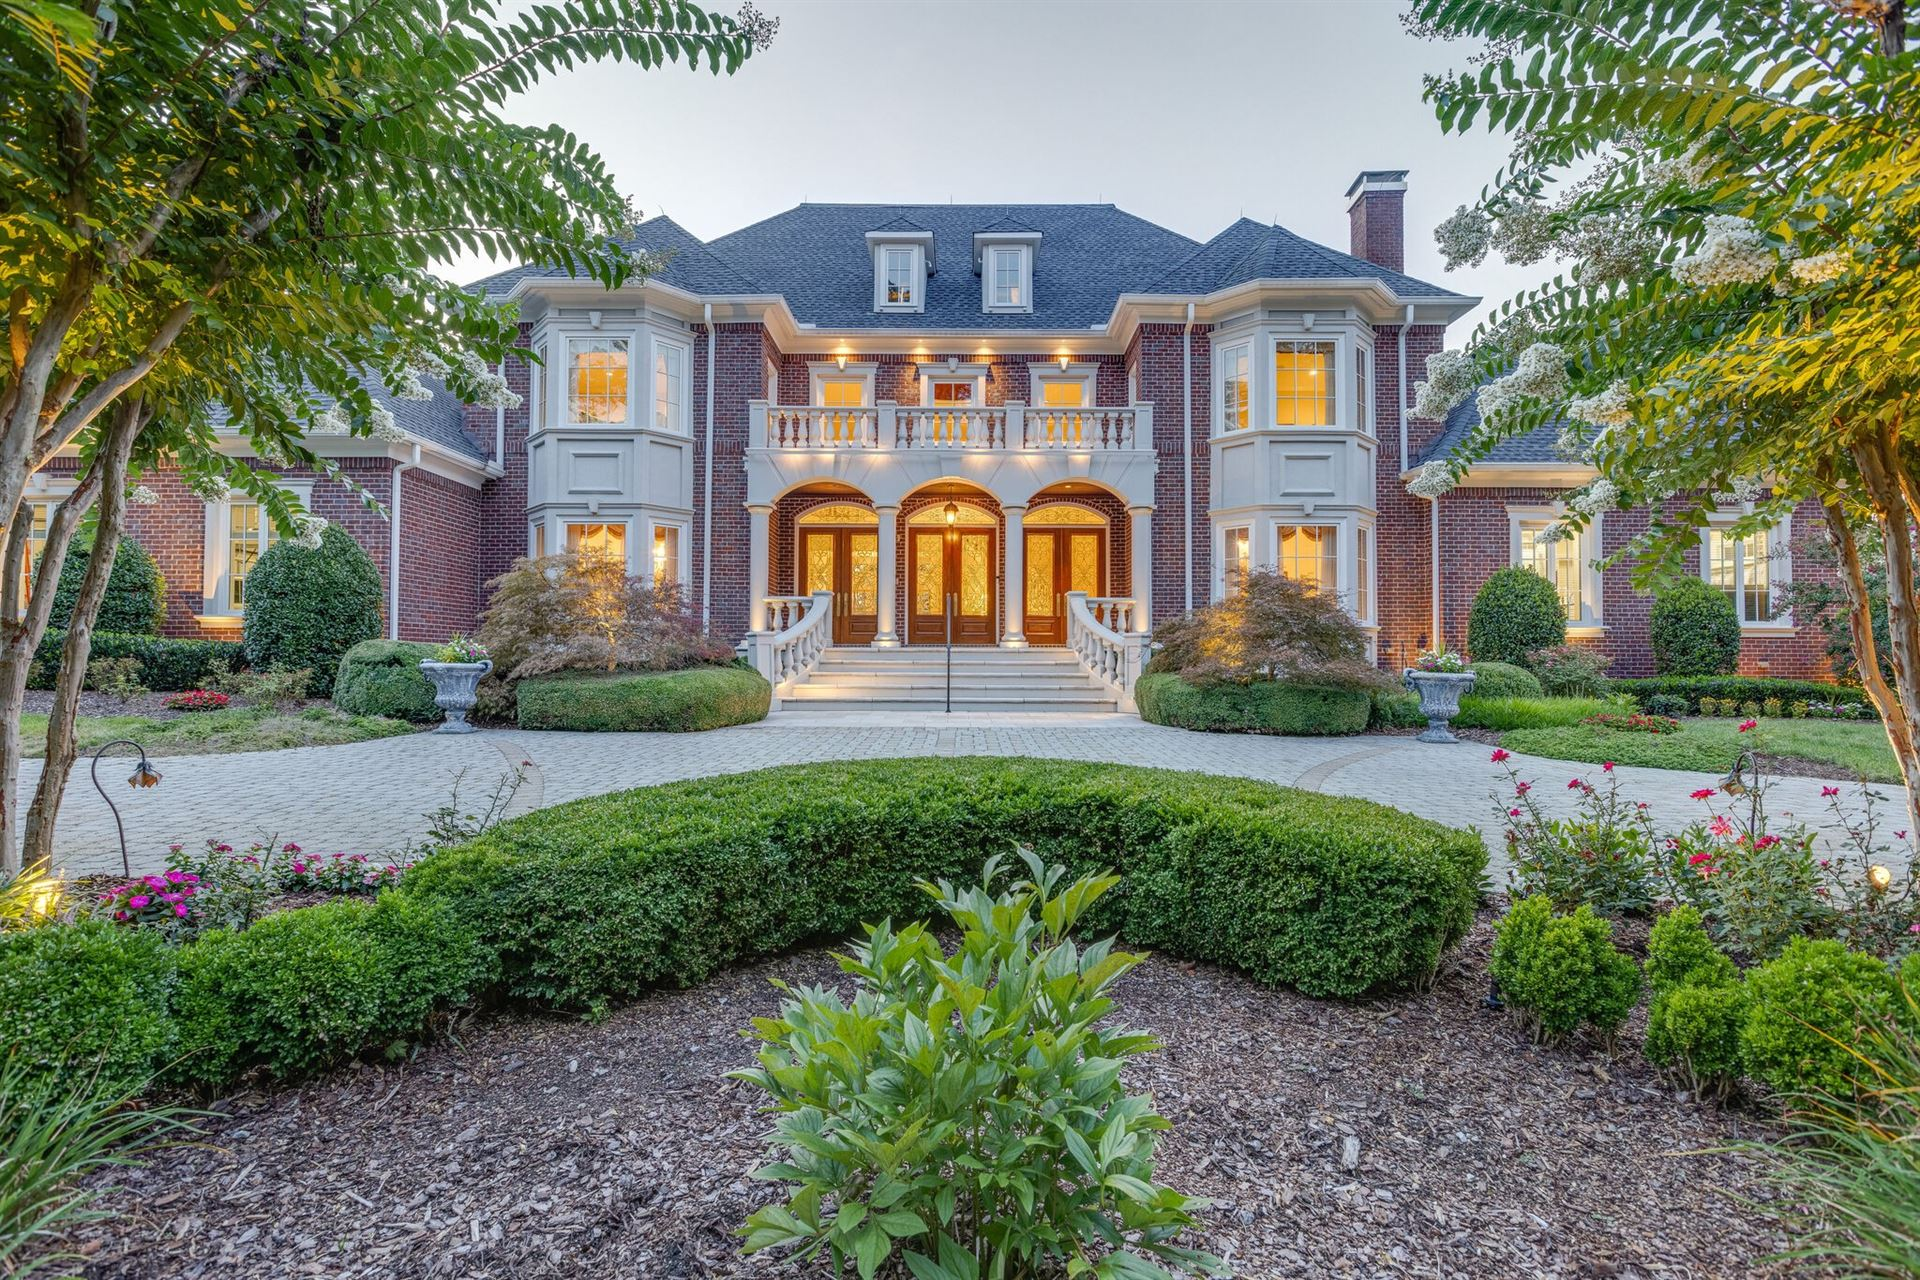 13 Colonel Winstead Dr, Brentwood, TN 37027 - MLS#: 2281883